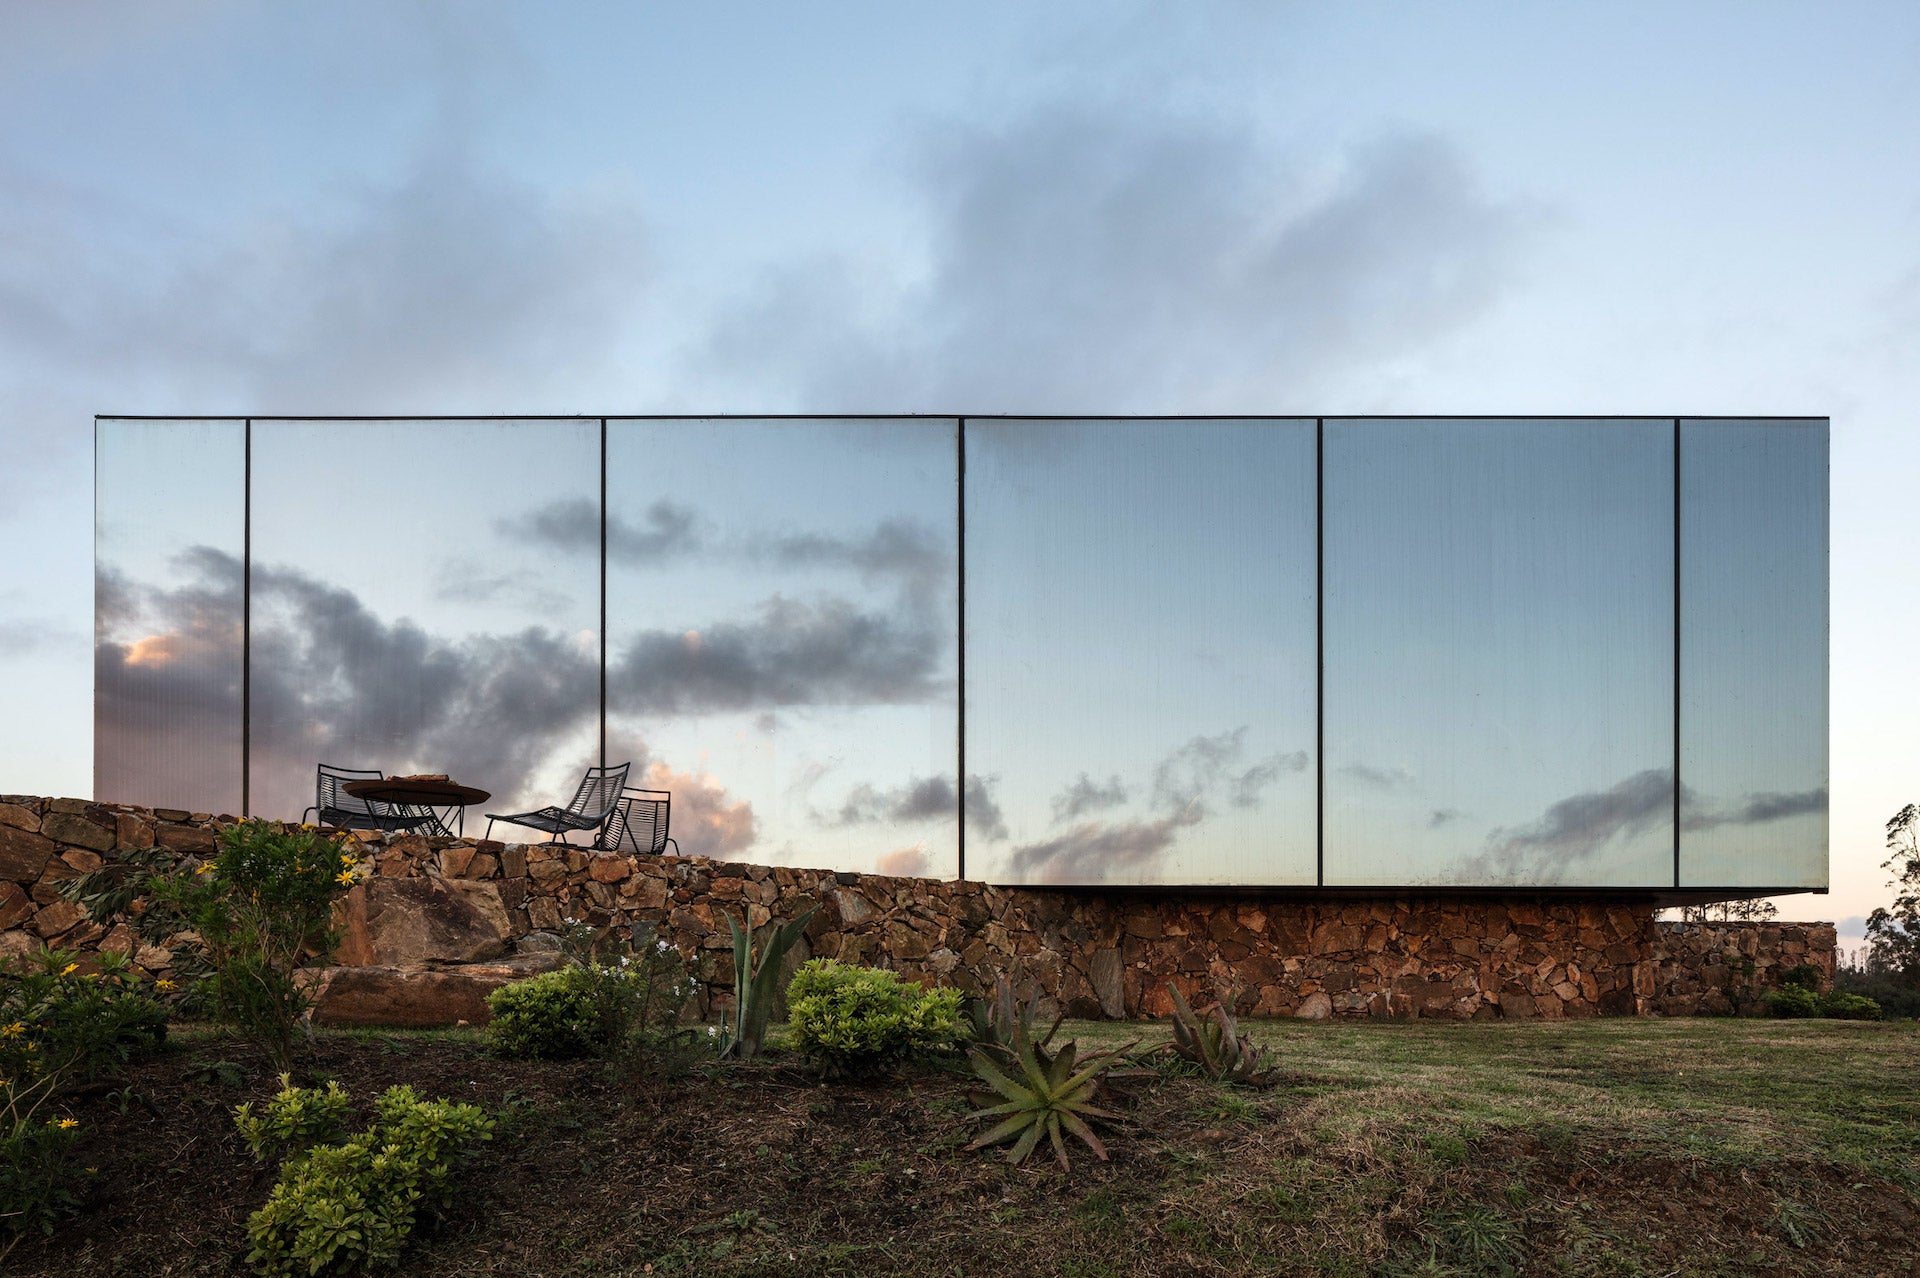 """Sacromonte Landscape Hotel in the Carape Mountain Range by MAPA. Fogale says: """"This project in my hometown Maldonado is a great example of the inclusion of nature and wellbeing in our lives as well as what Uruguayan design and architecture can achieve."""" Photo © MAPA Arquitectos"""